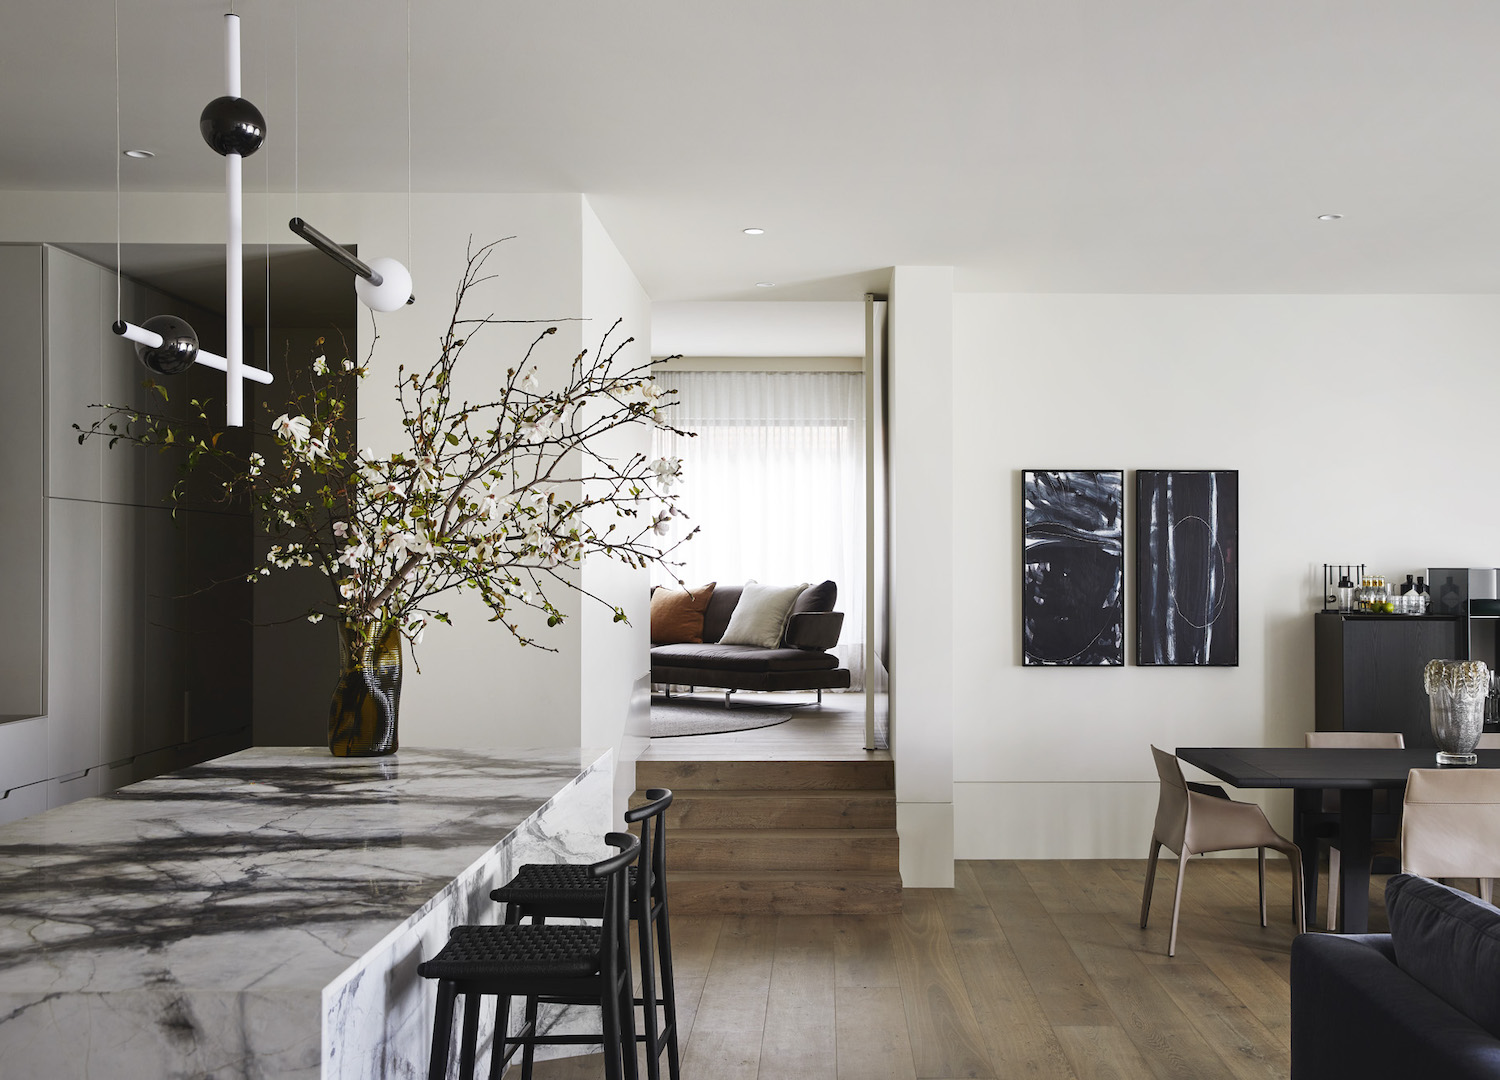 est living orchard piper jolson architecture interiors residence one5